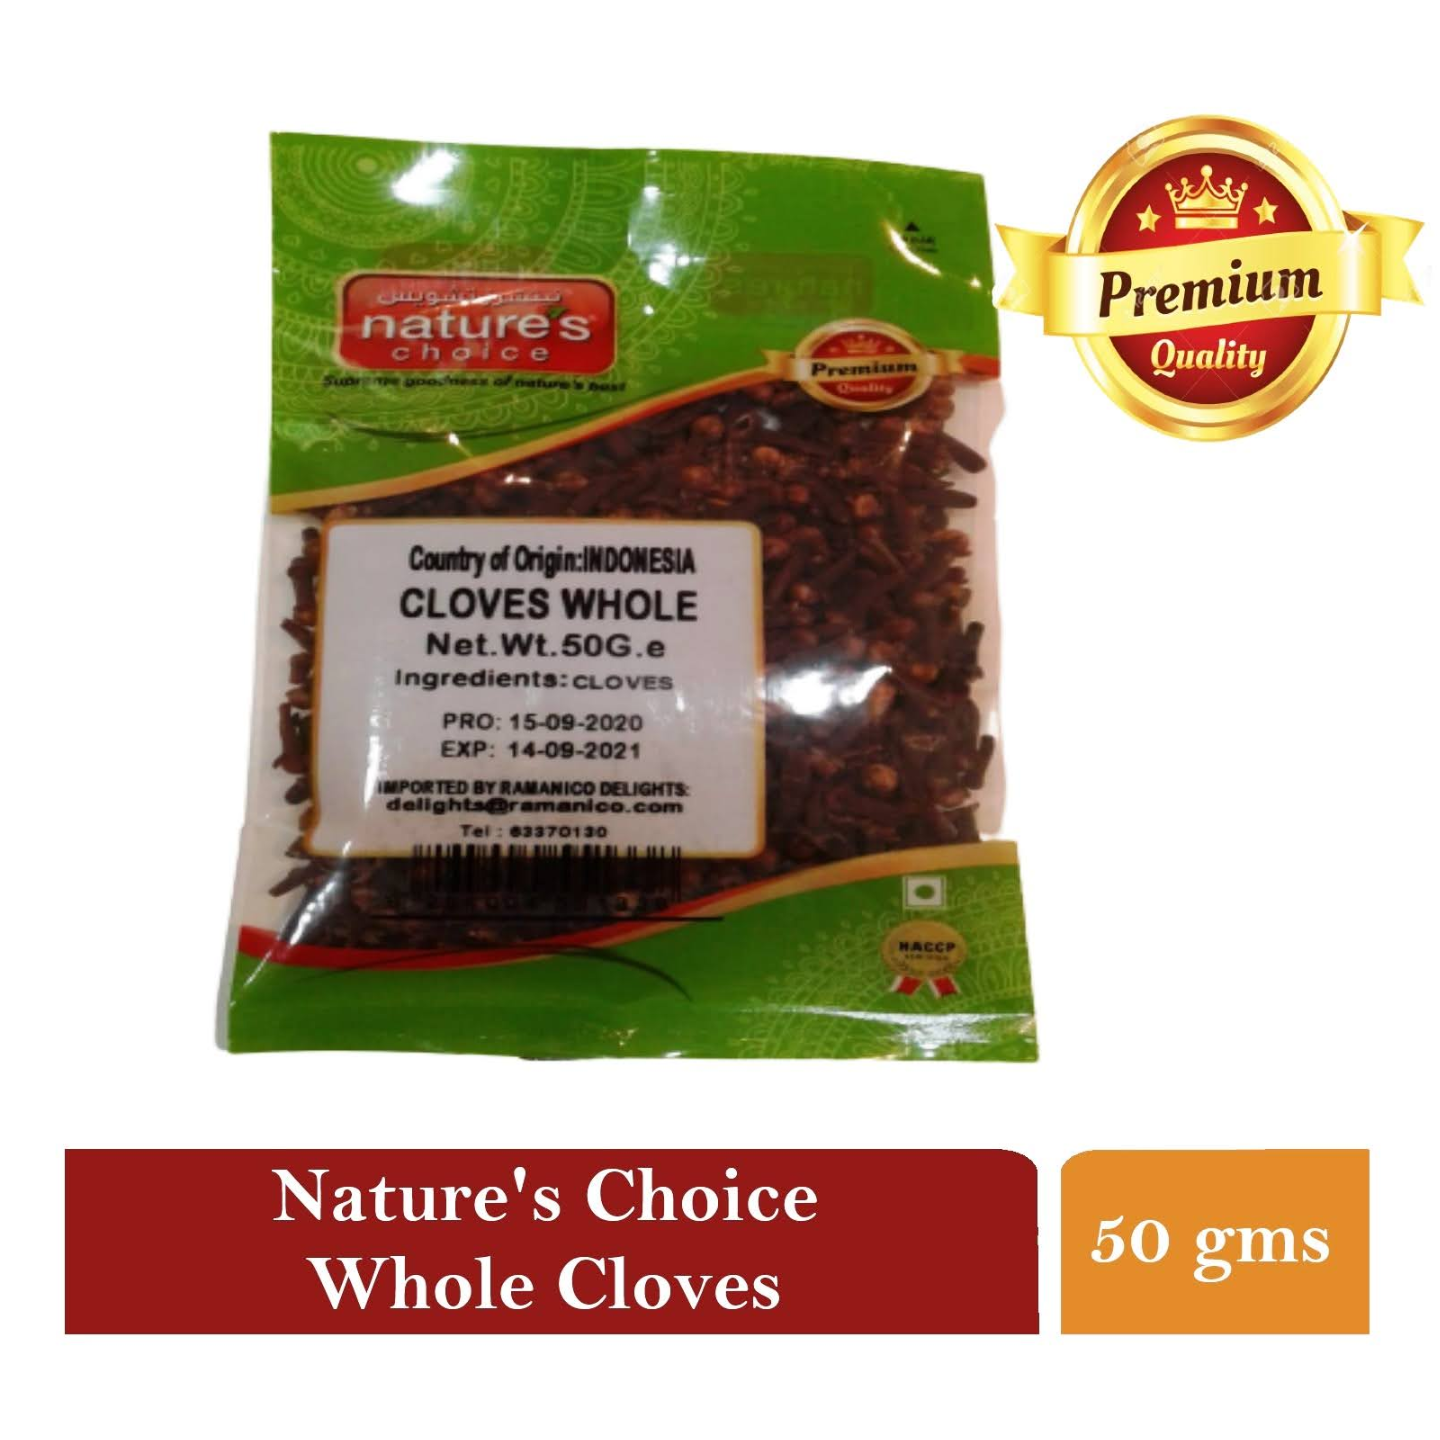 NATURES CHOICE PREMIUM QUALITY WHOLE CLOVES 50G